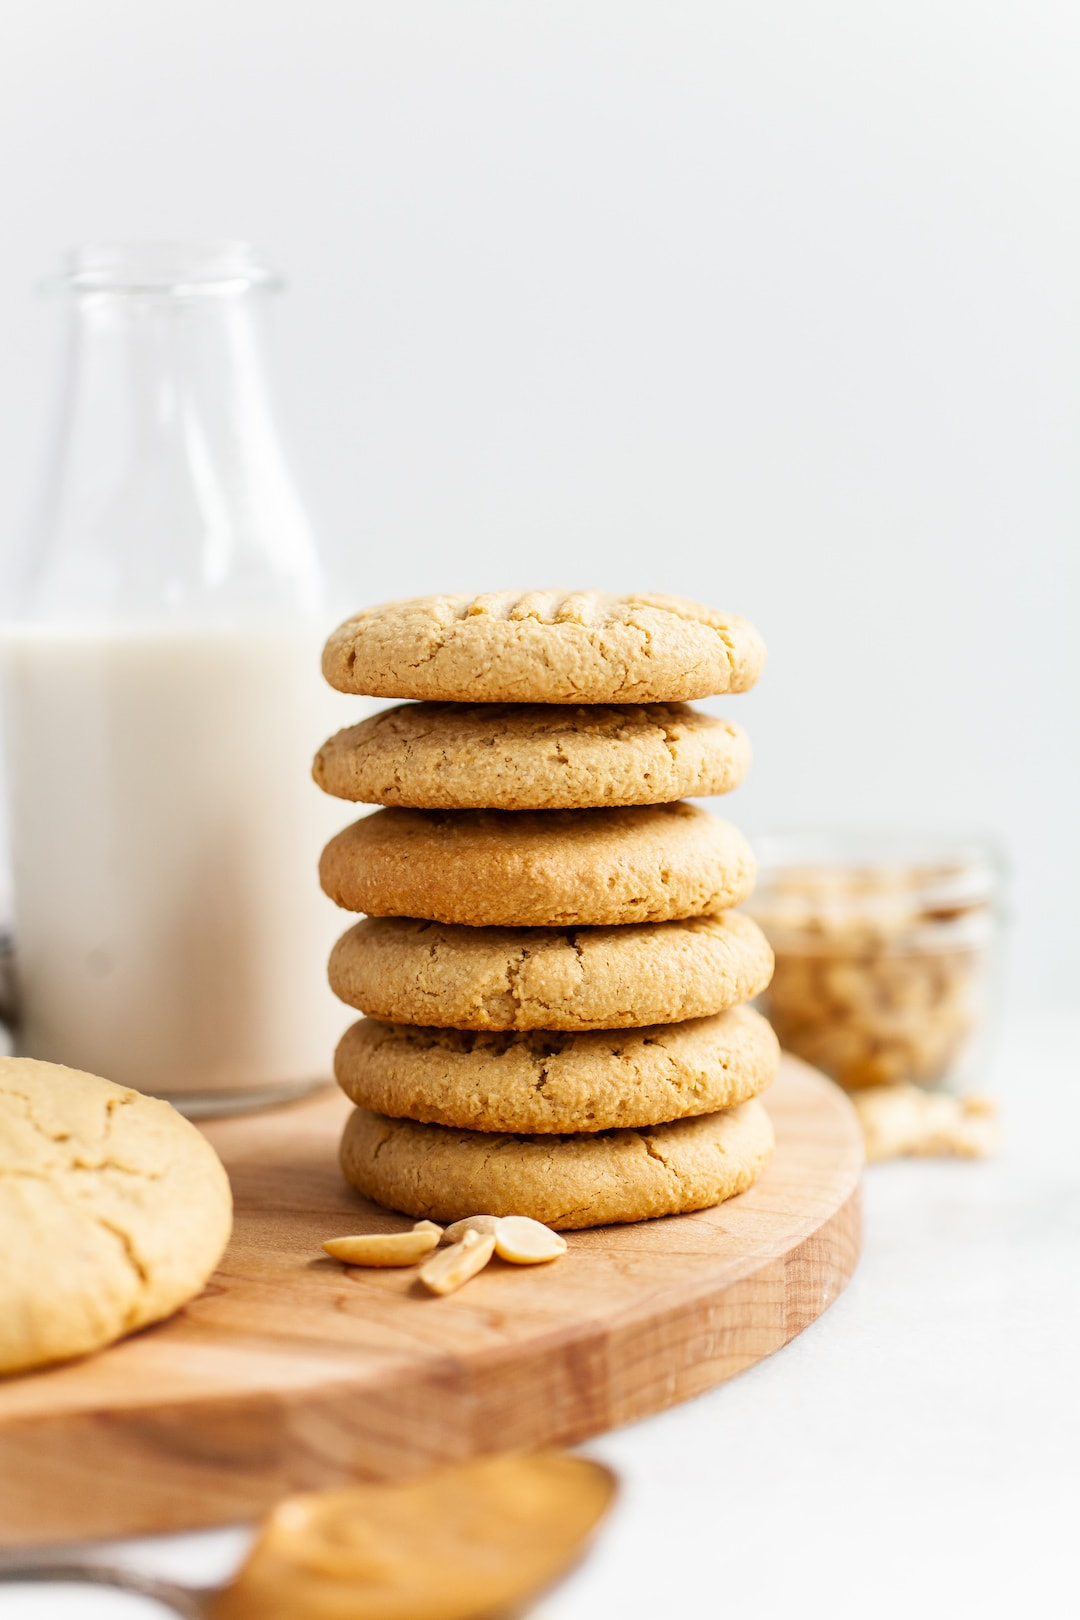 Close up of a stack of six almond flour peanut butter cookies on a wood tray